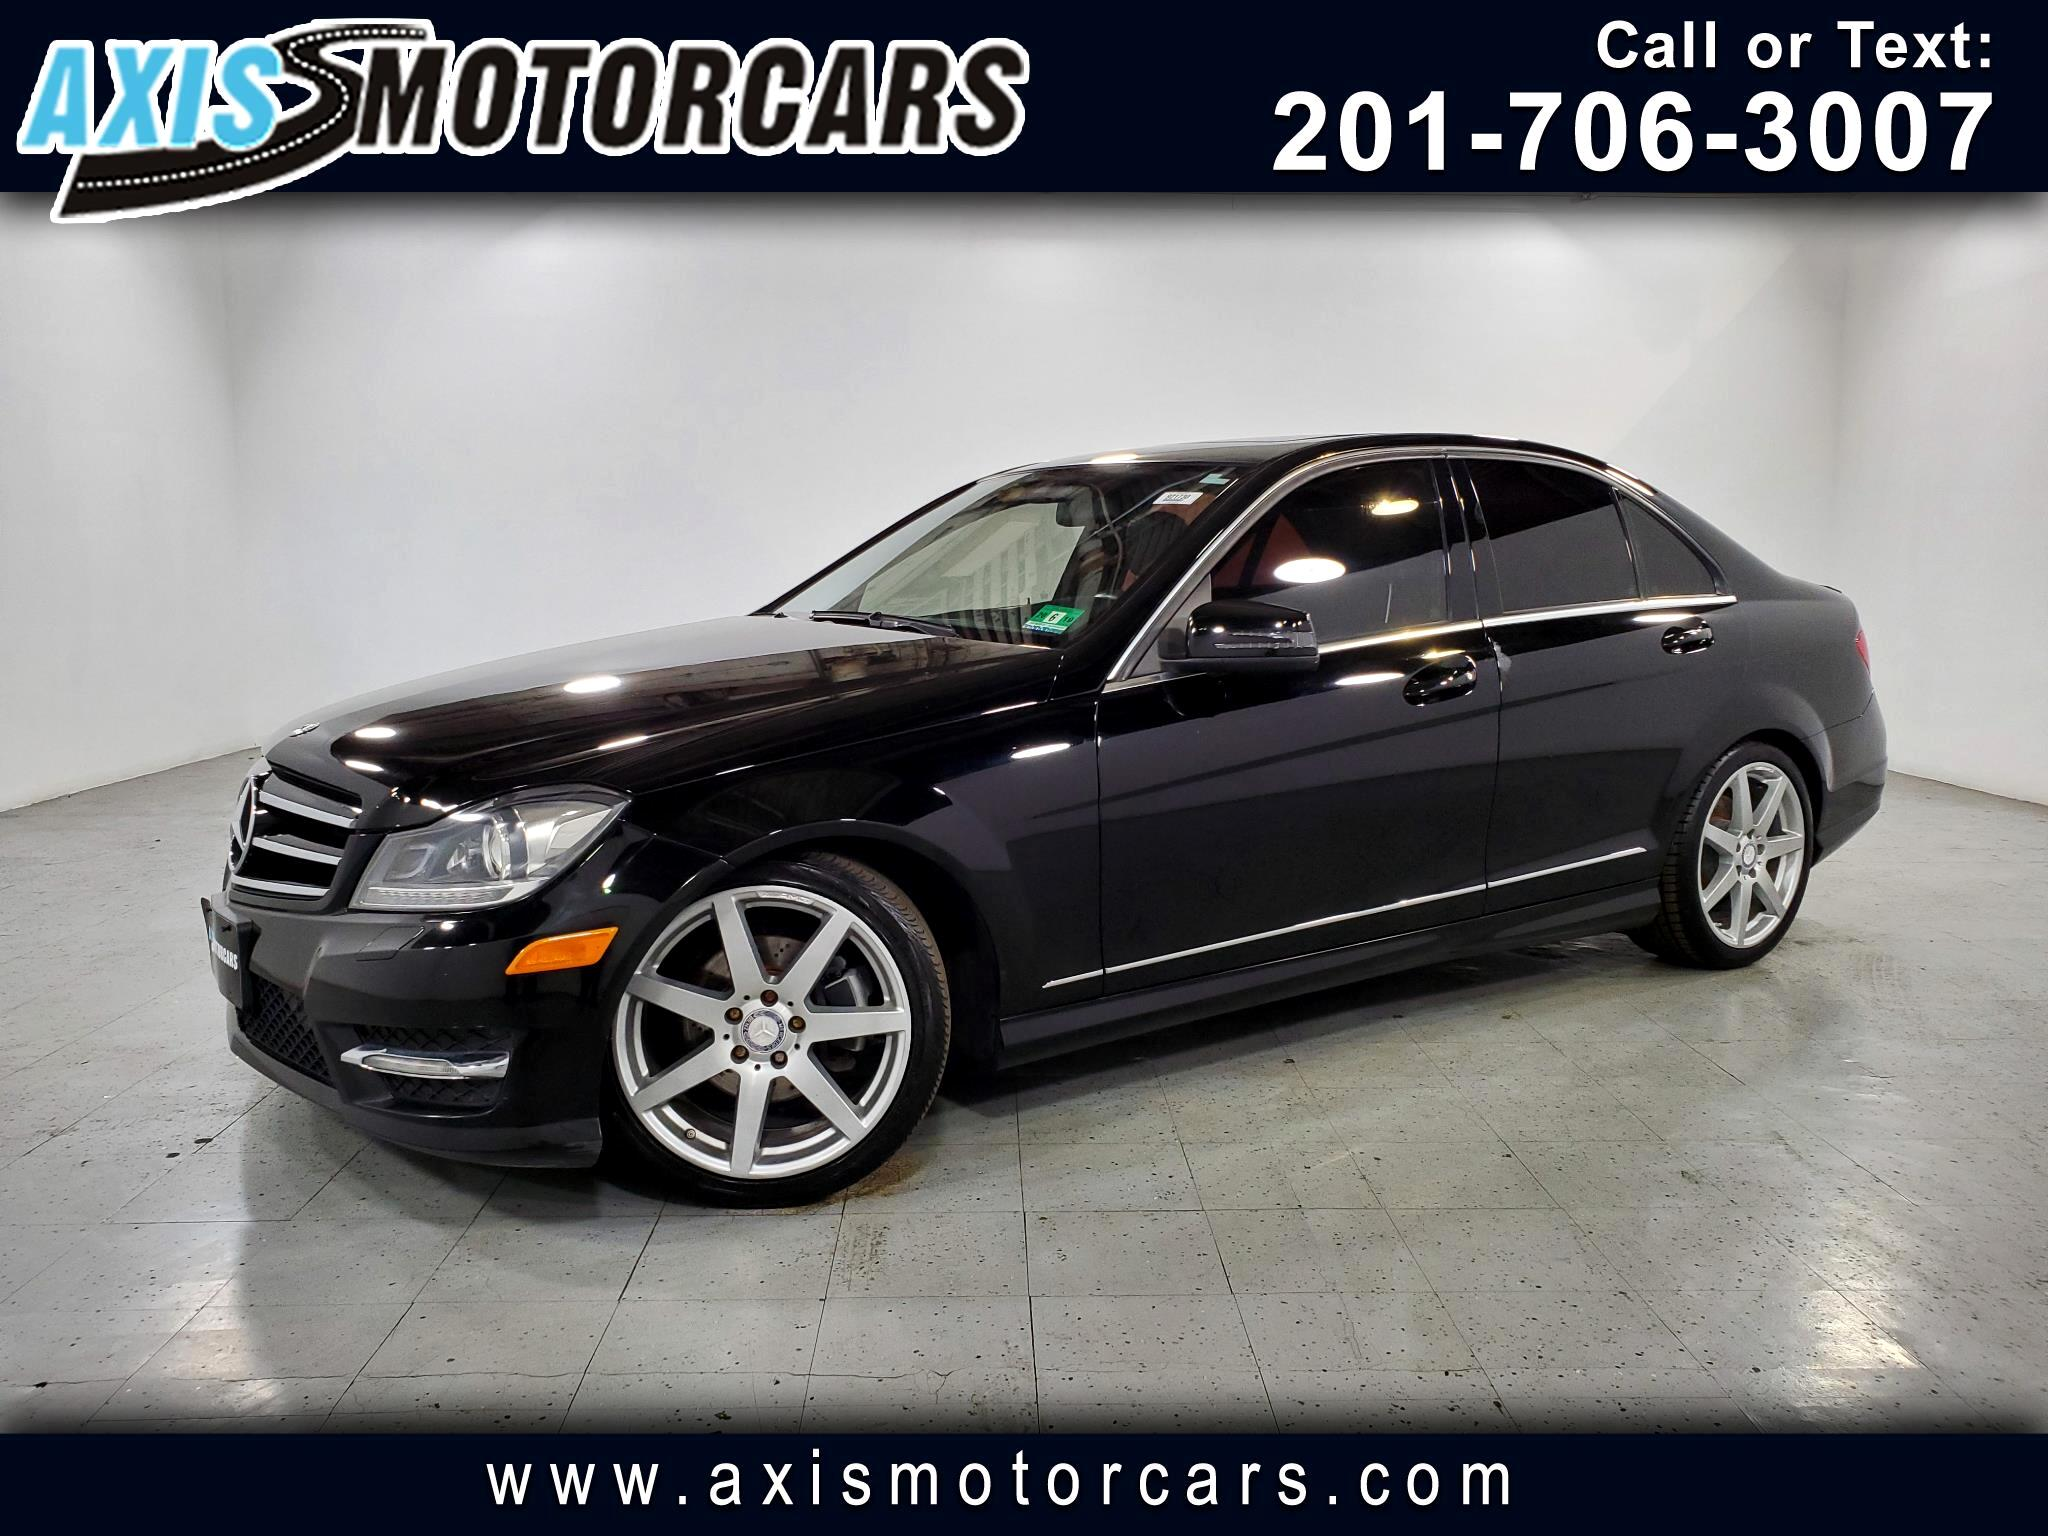 2012 Mercedes-Benz C300 w/Navigation Backup Camera Sunroof